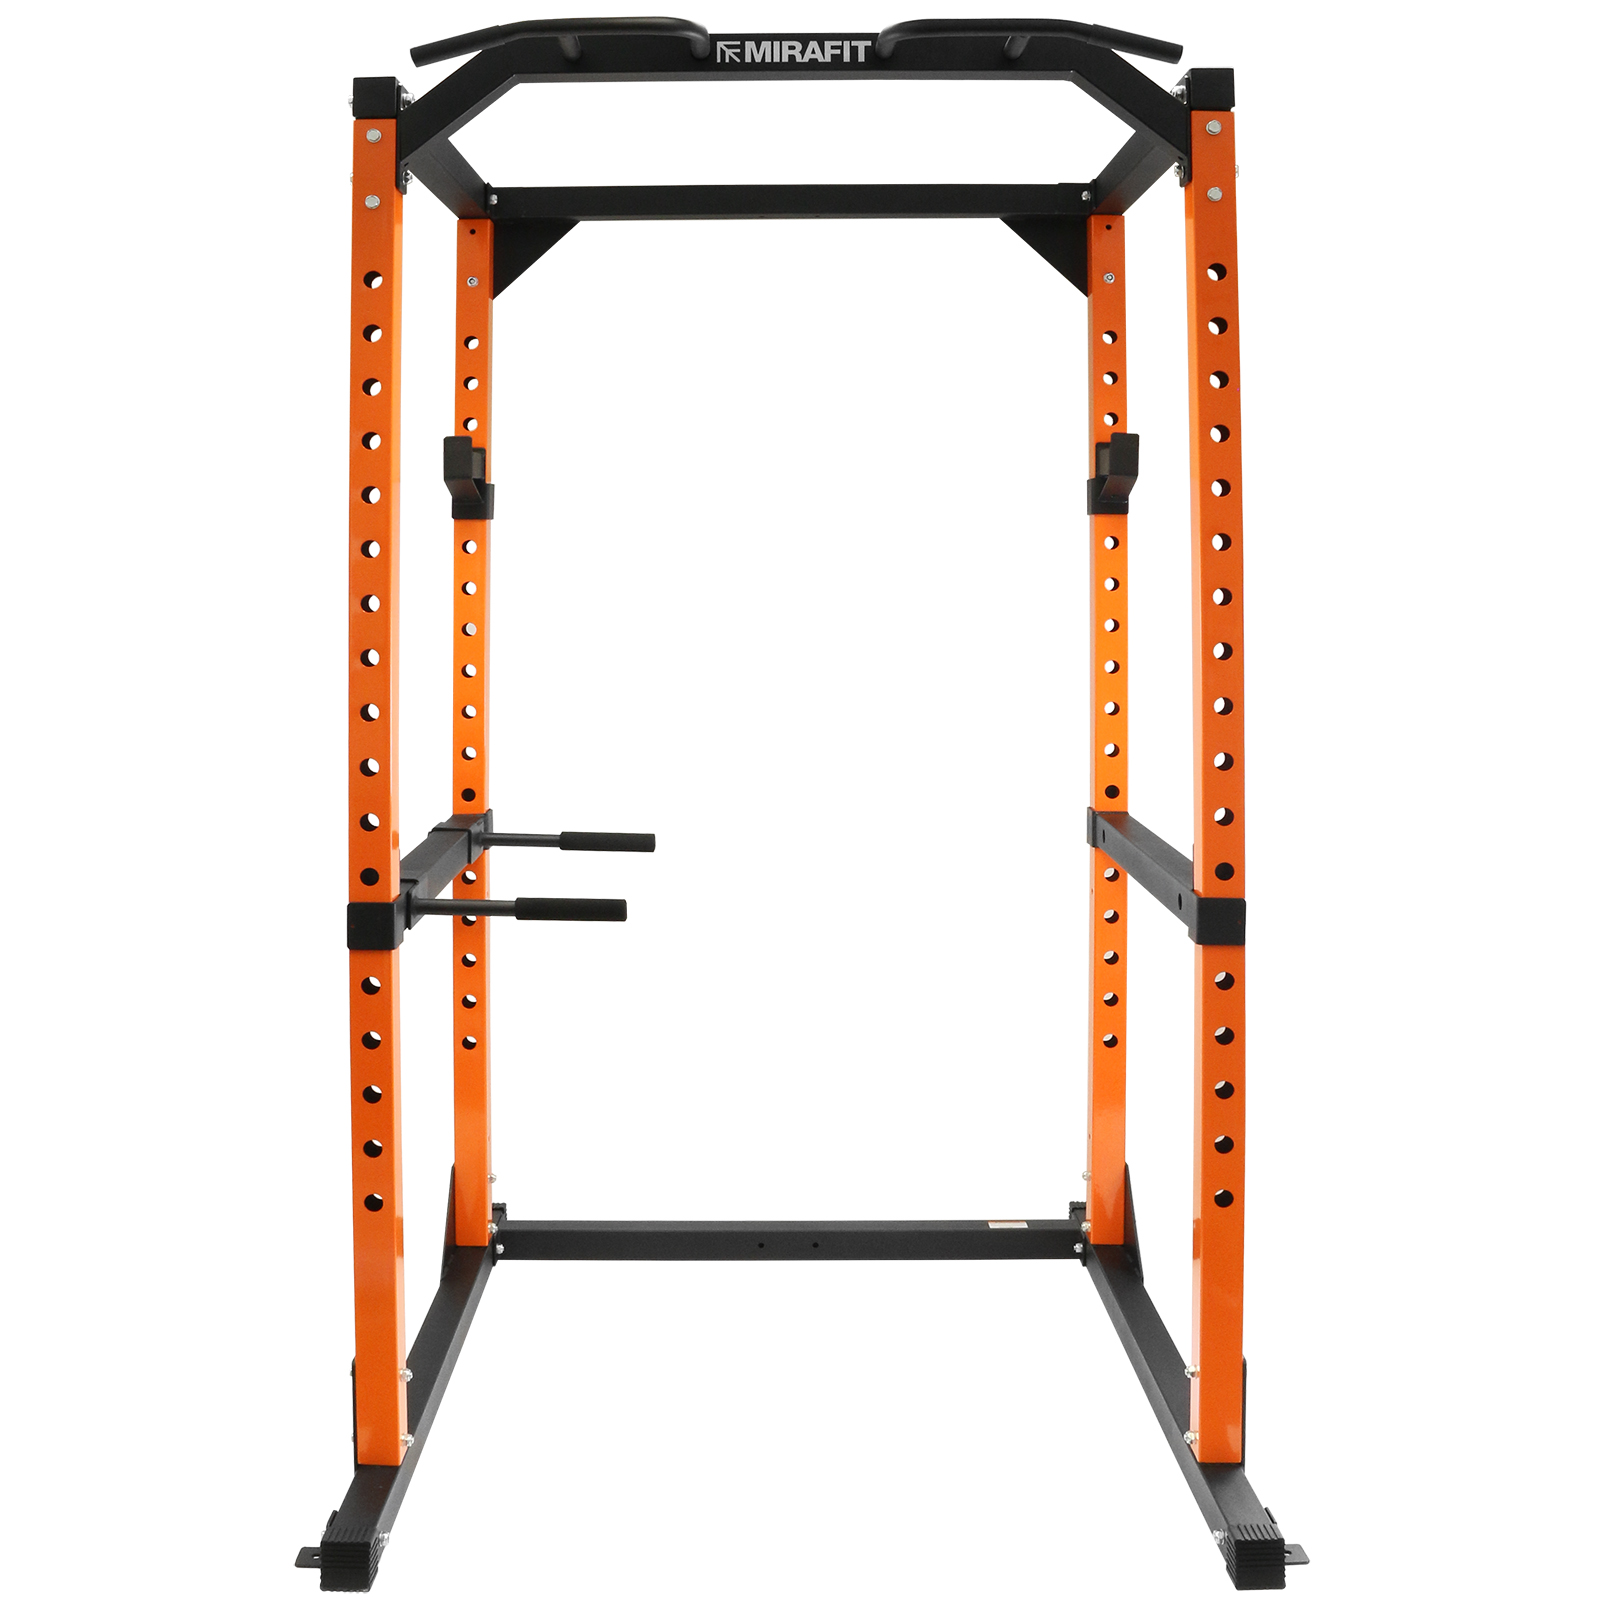 mirafit m2 power cage squat rack pull up dip bar weight lifting multi gym frame ebay. Black Bedroom Furniture Sets. Home Design Ideas